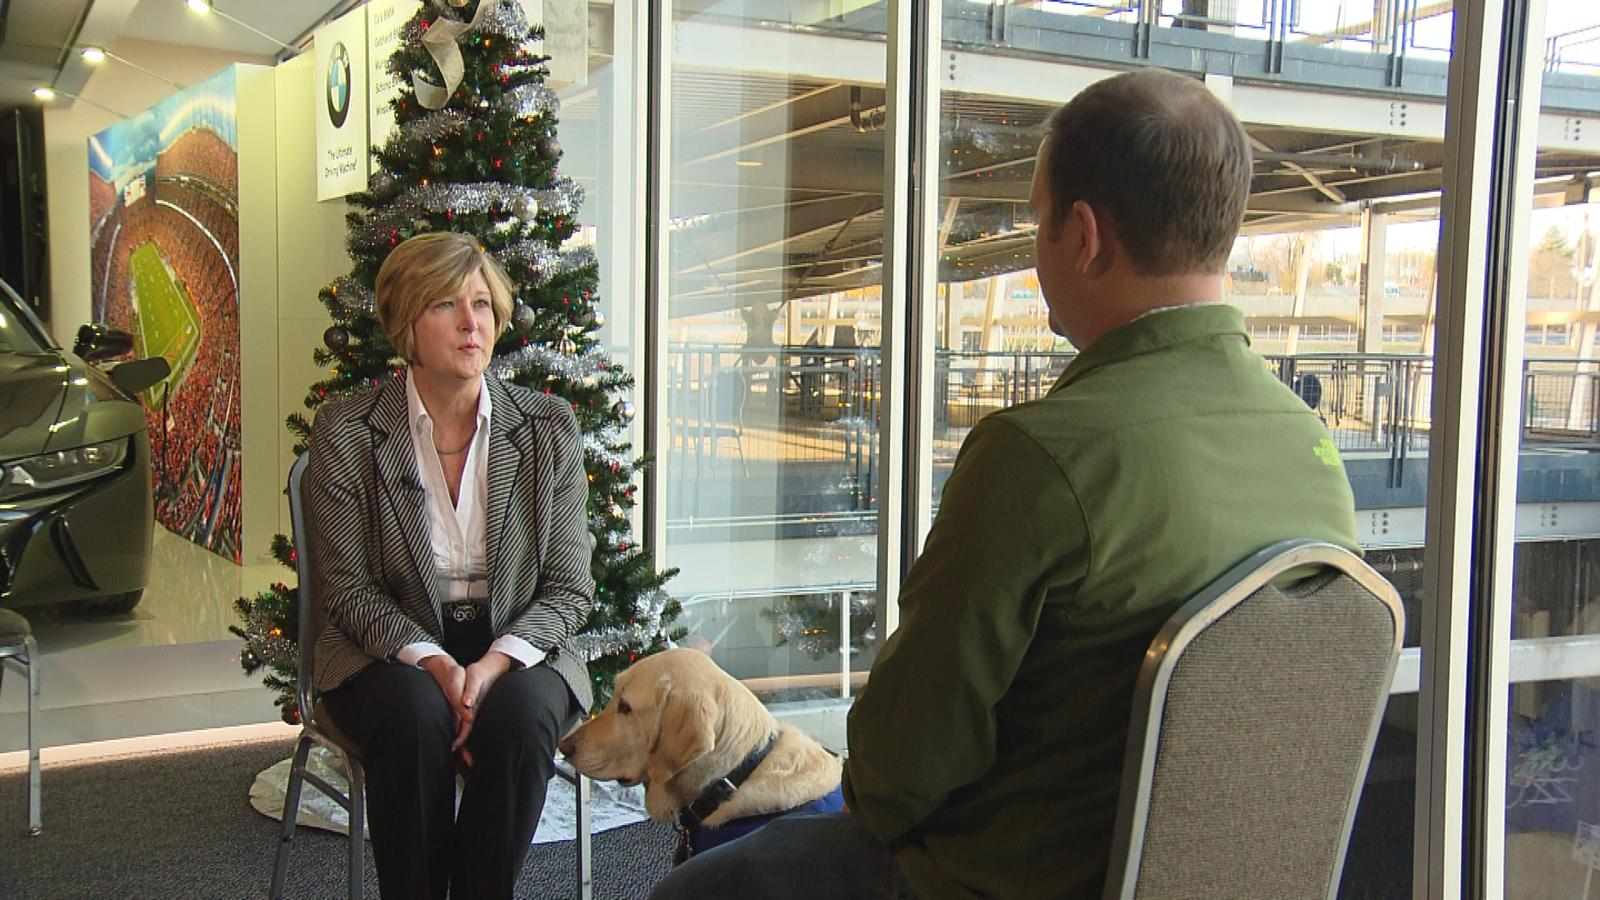 Becky Zimmerman, the President and CEO of the National Sports Center for the Disabled, is interviewed by CBS4's Jeff Todd (credit: CBS)